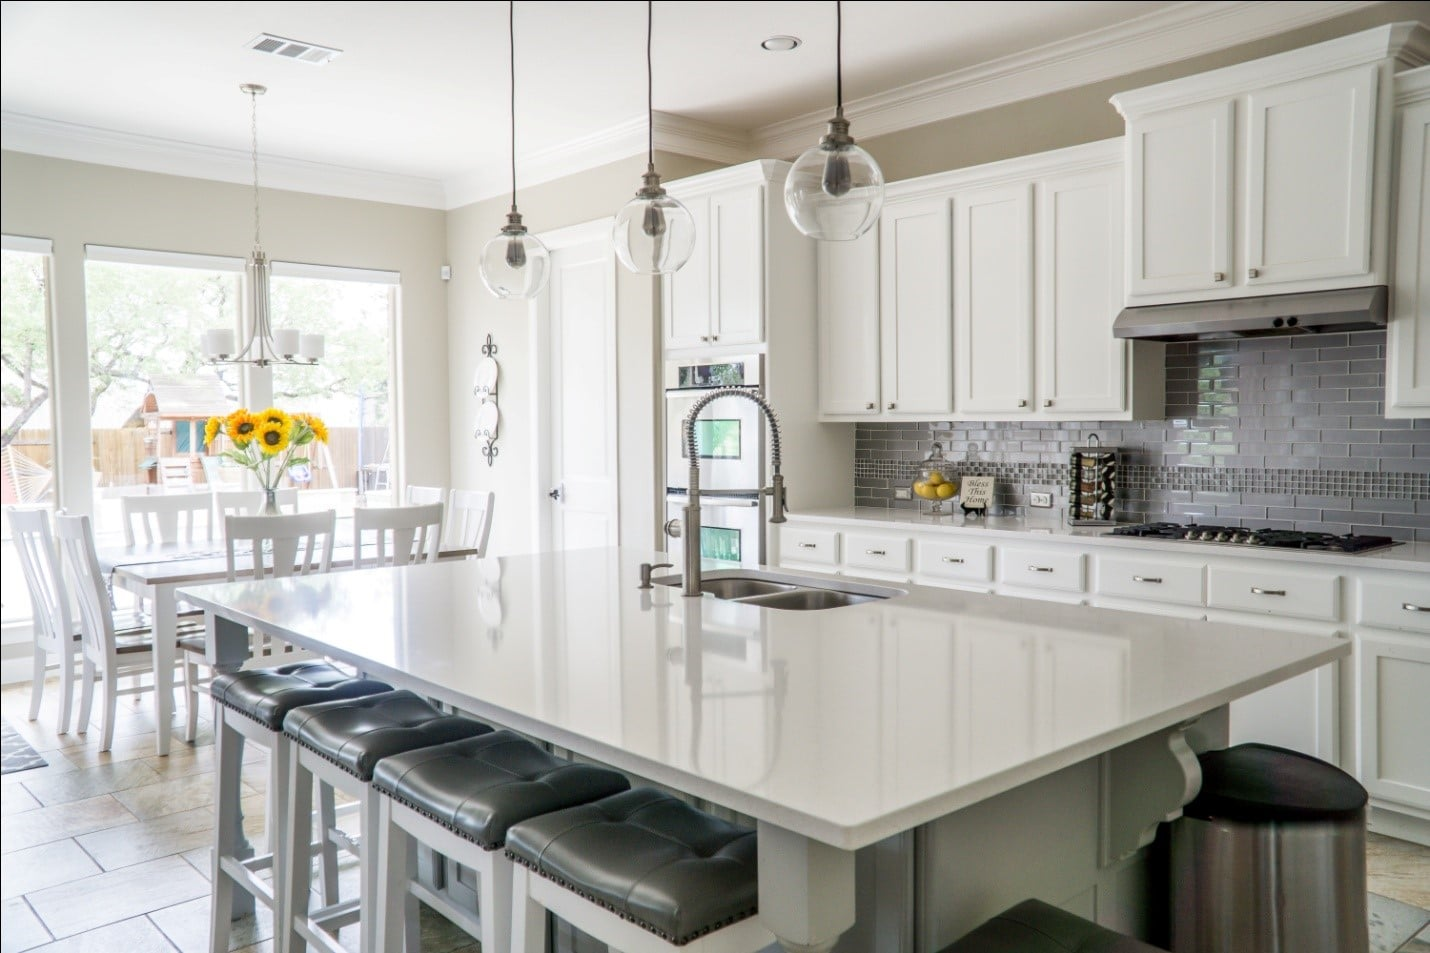 5 Essential Do's and Don'ts of Staging a Home